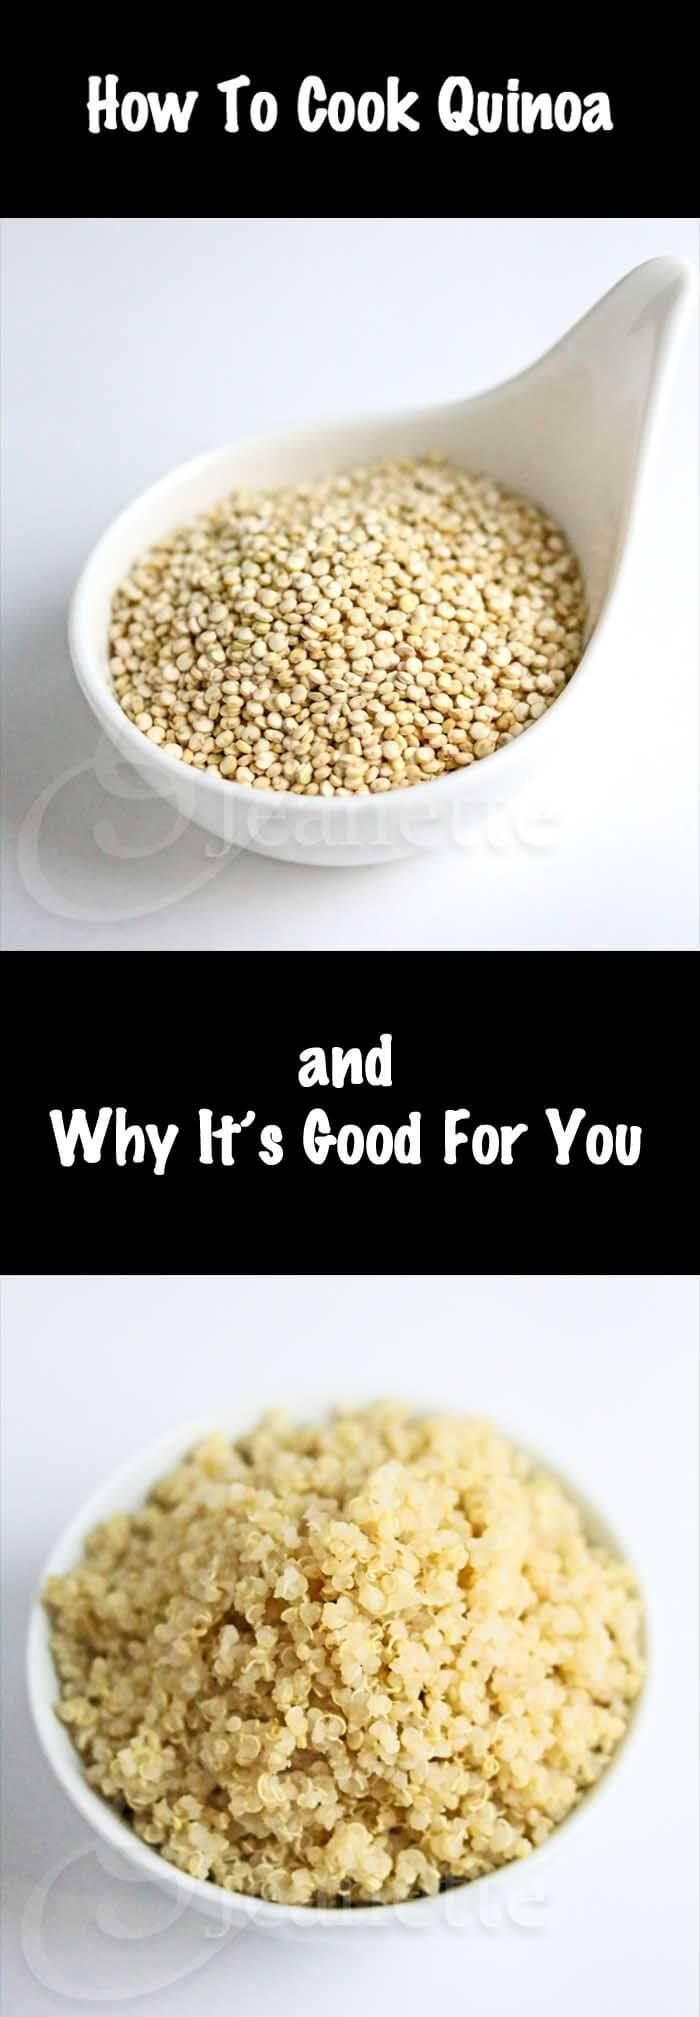 How To Cook Quinoa Why It's Good For You